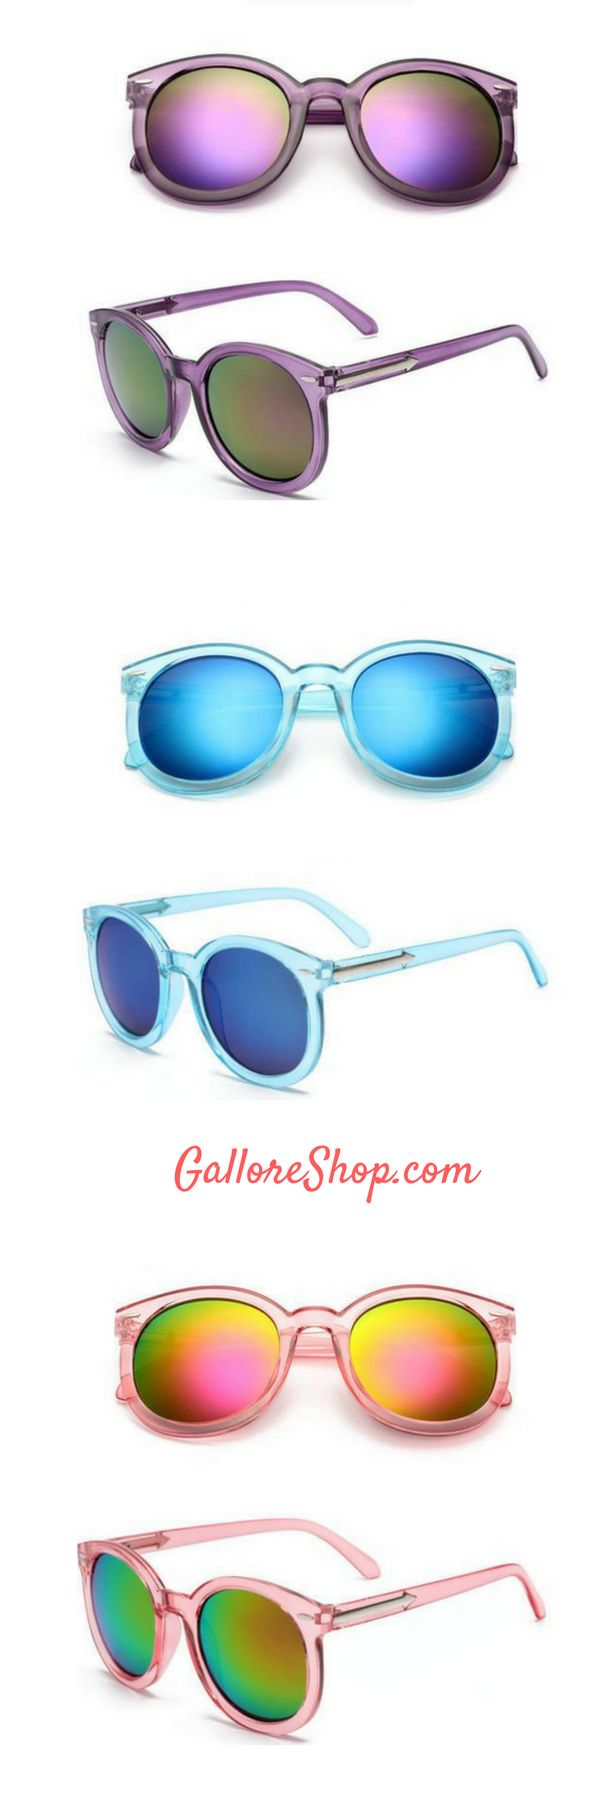 Stay in the shade in style with these fashion mirror sunglasses  mirror sunglasses | mirror sunglasses women | mirror sunglasses 2017 | mirror sunglasses aviators rose gold | mirror sunglasses aviators | Mirror Sunglasses | Mirror Sunglasses | Mirror sunglasses   #mirrorsunglasses #sunglasses #eyewearfashion #trendingnow #shades #giftsforherchristmas